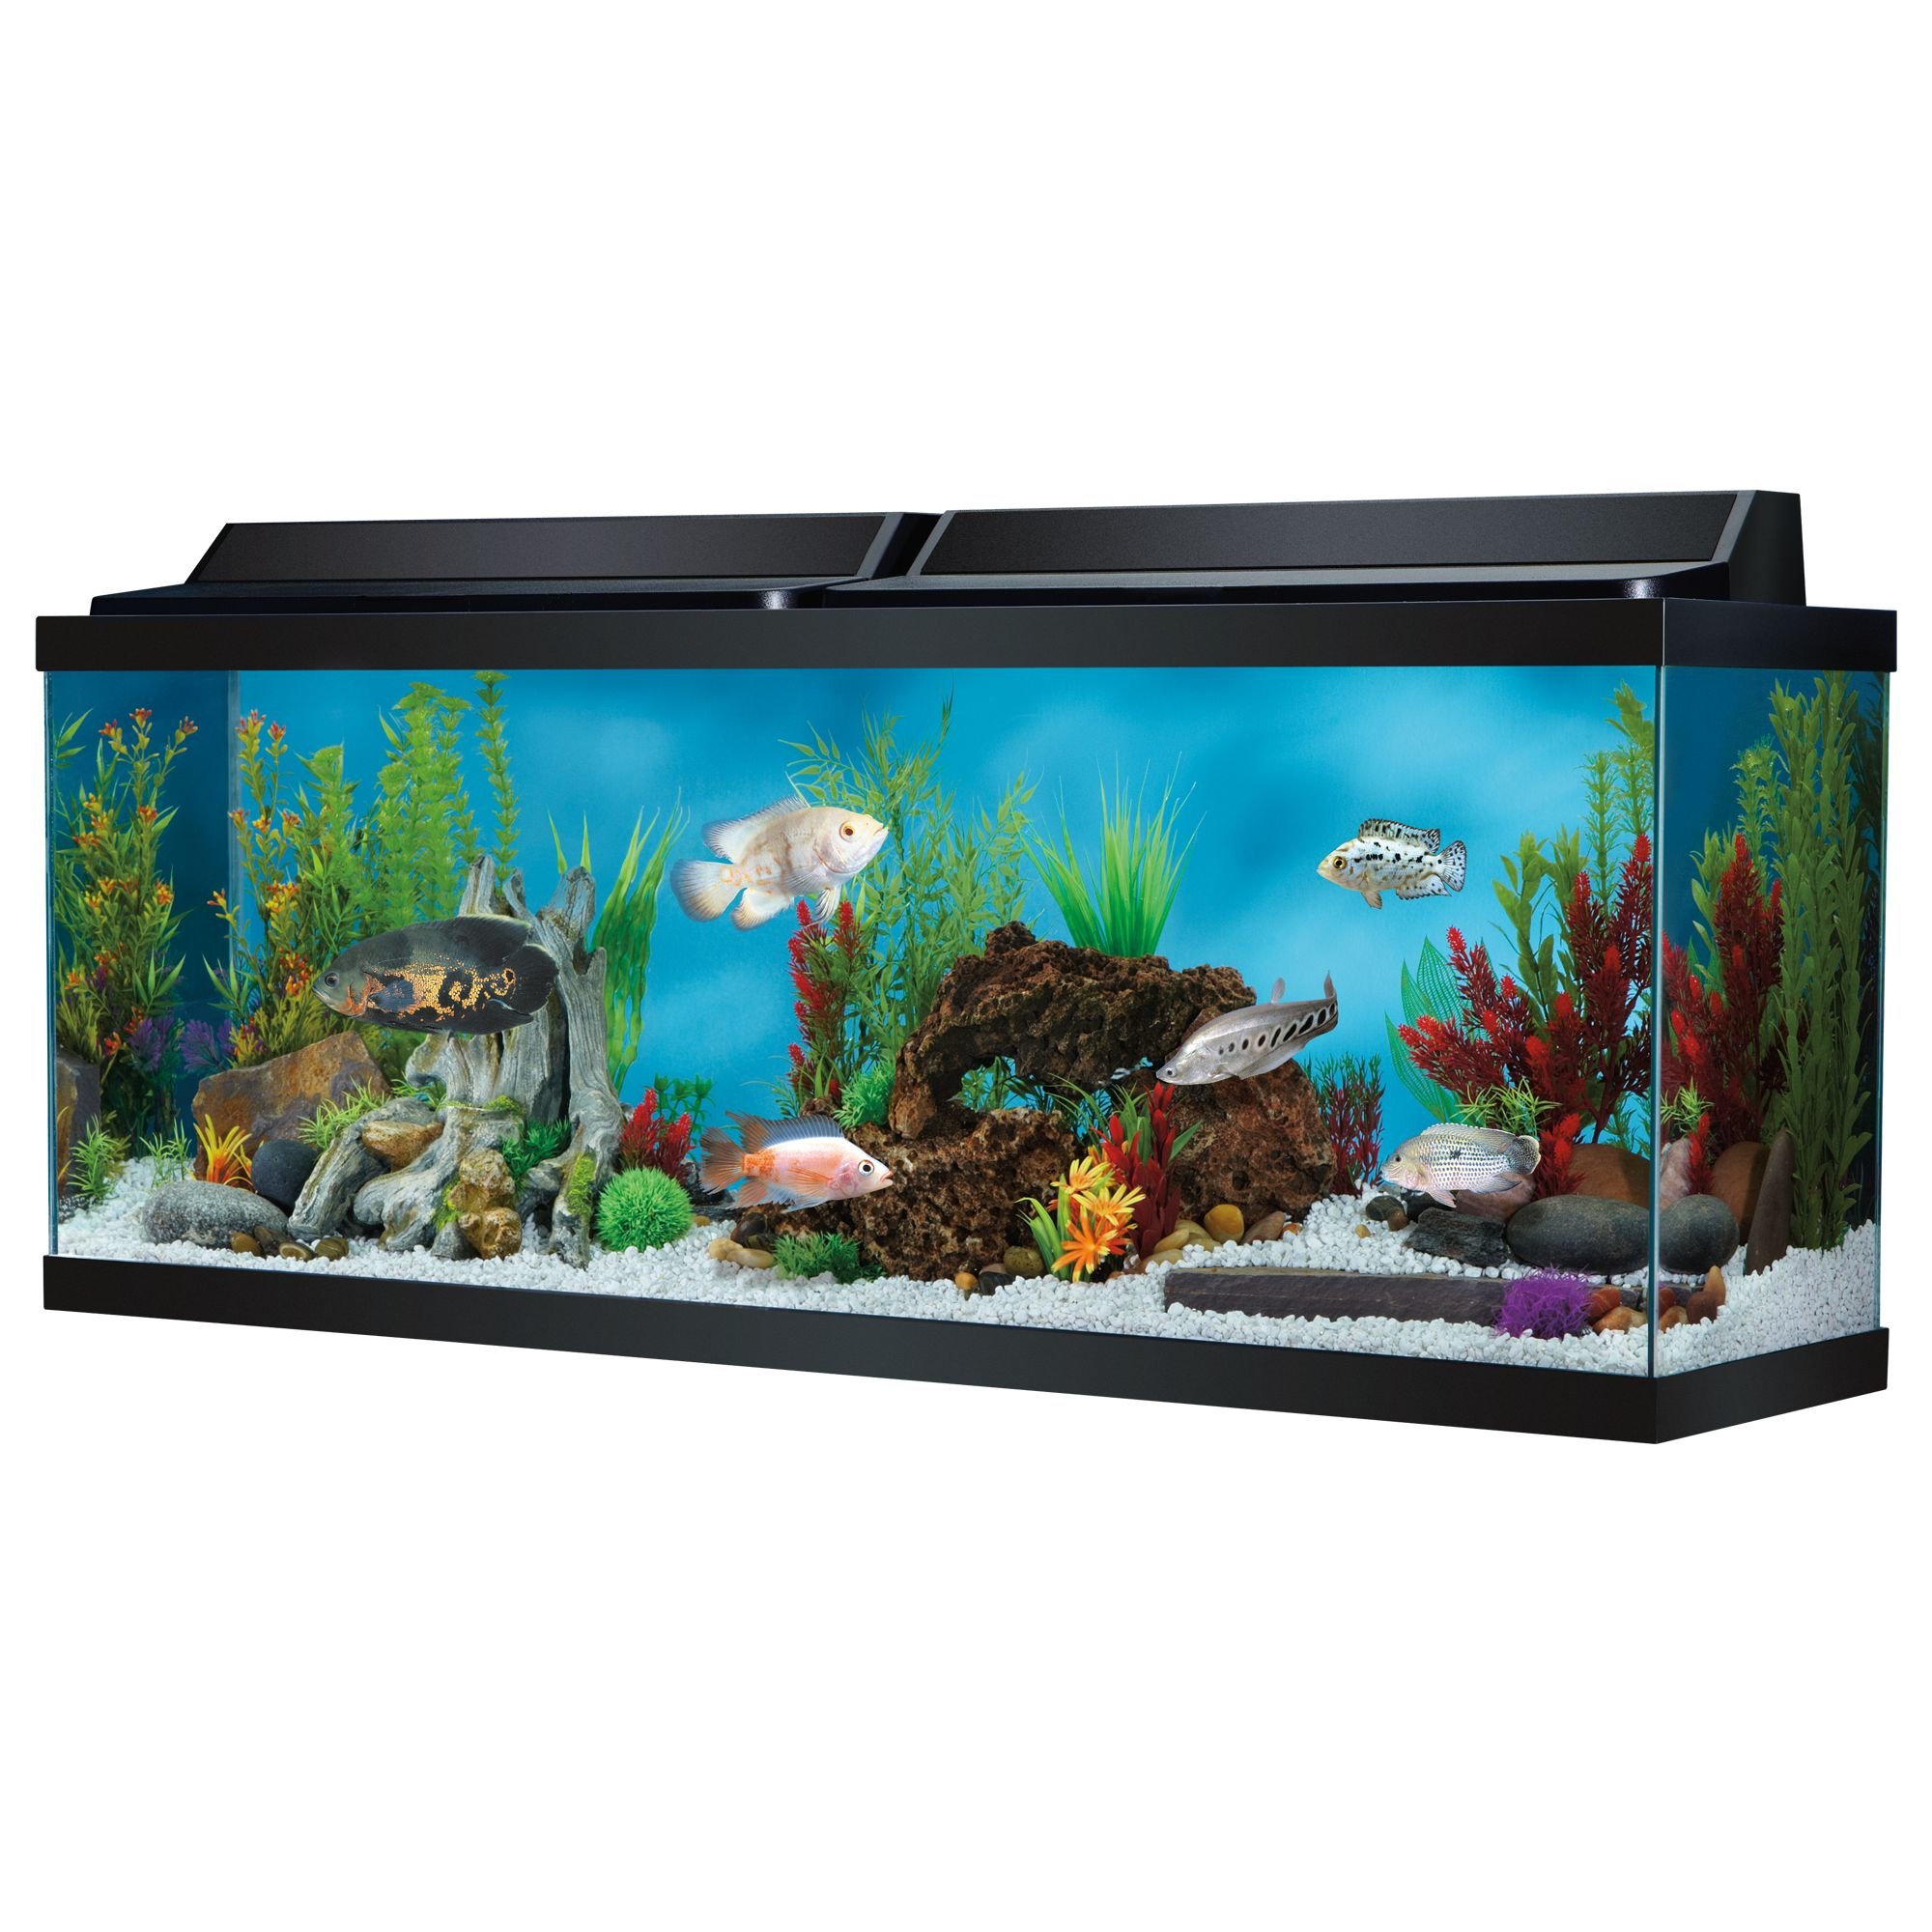 Top Fin 150 Gallon Aquarium